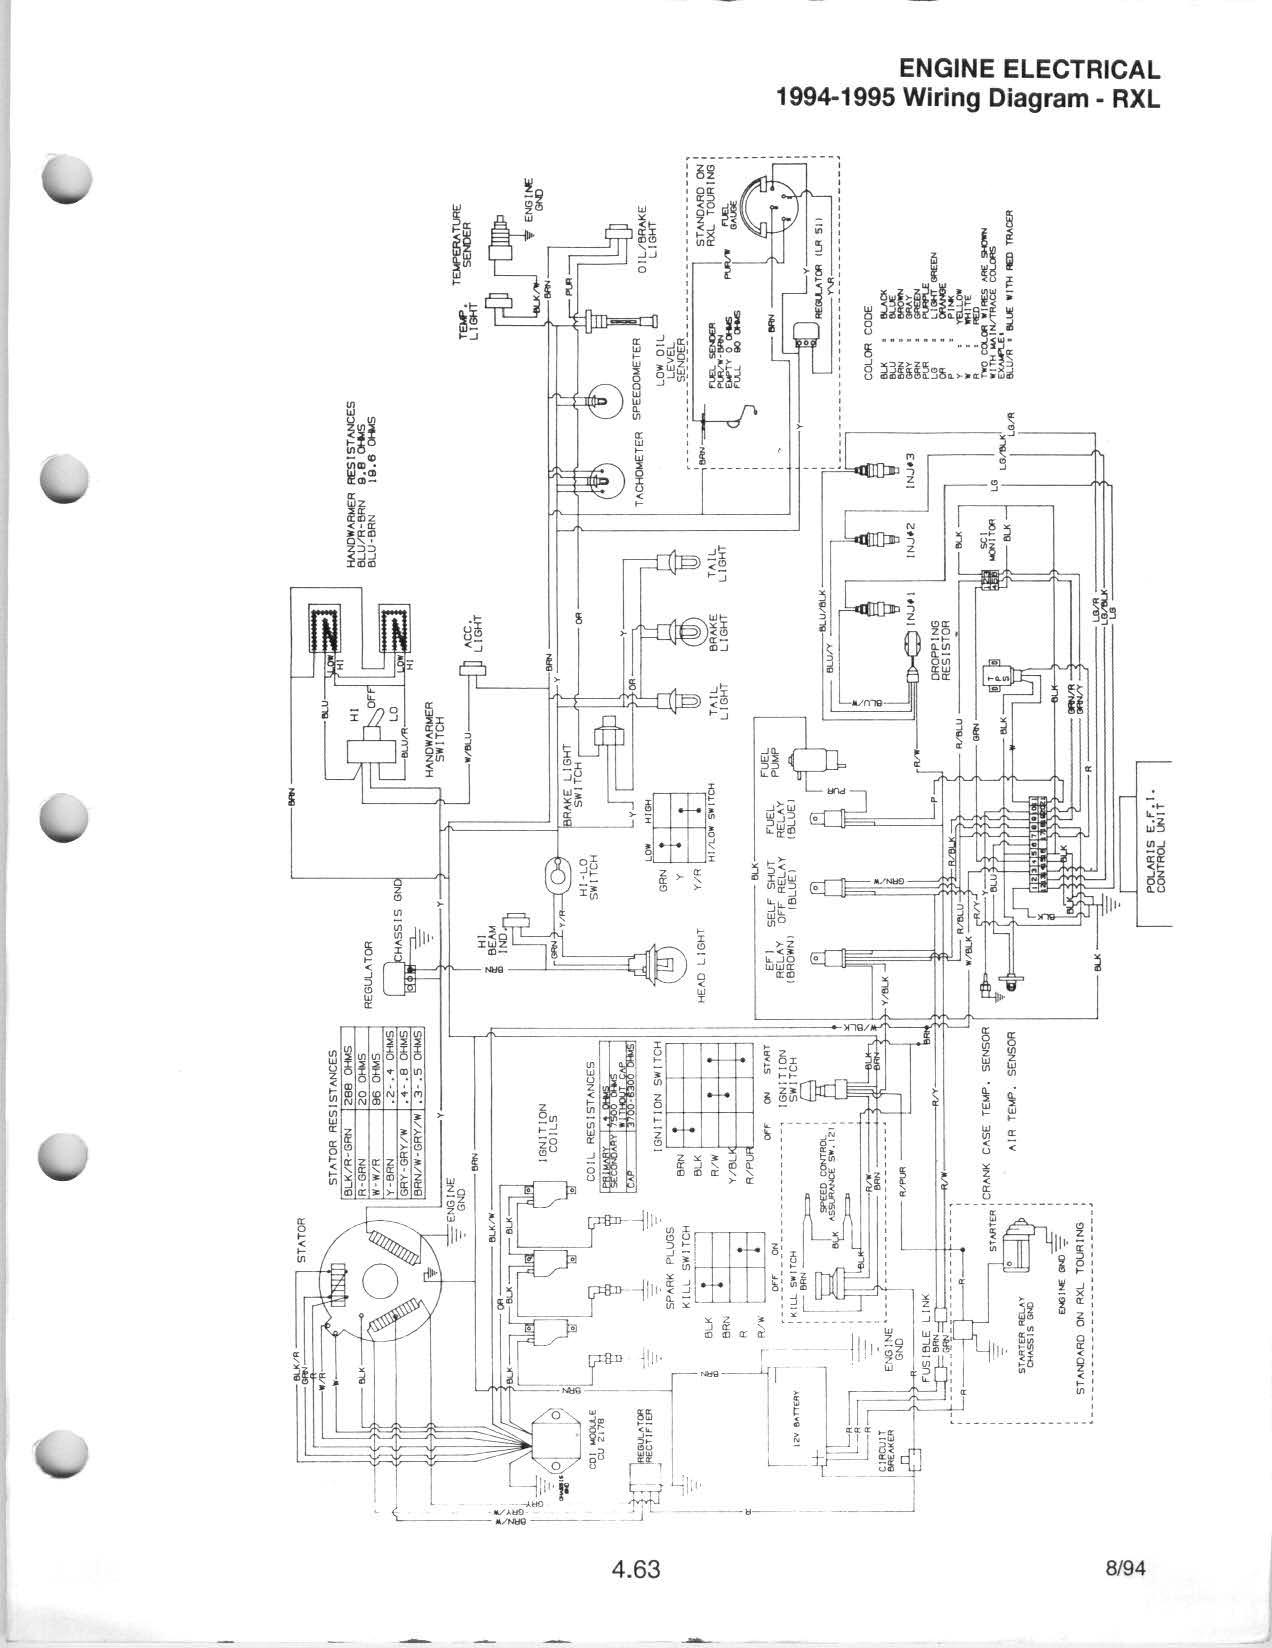 hight resolution of 1991 polaris wiring diagram everything wiring diagram wiring diagram for 1991 polaris rxl